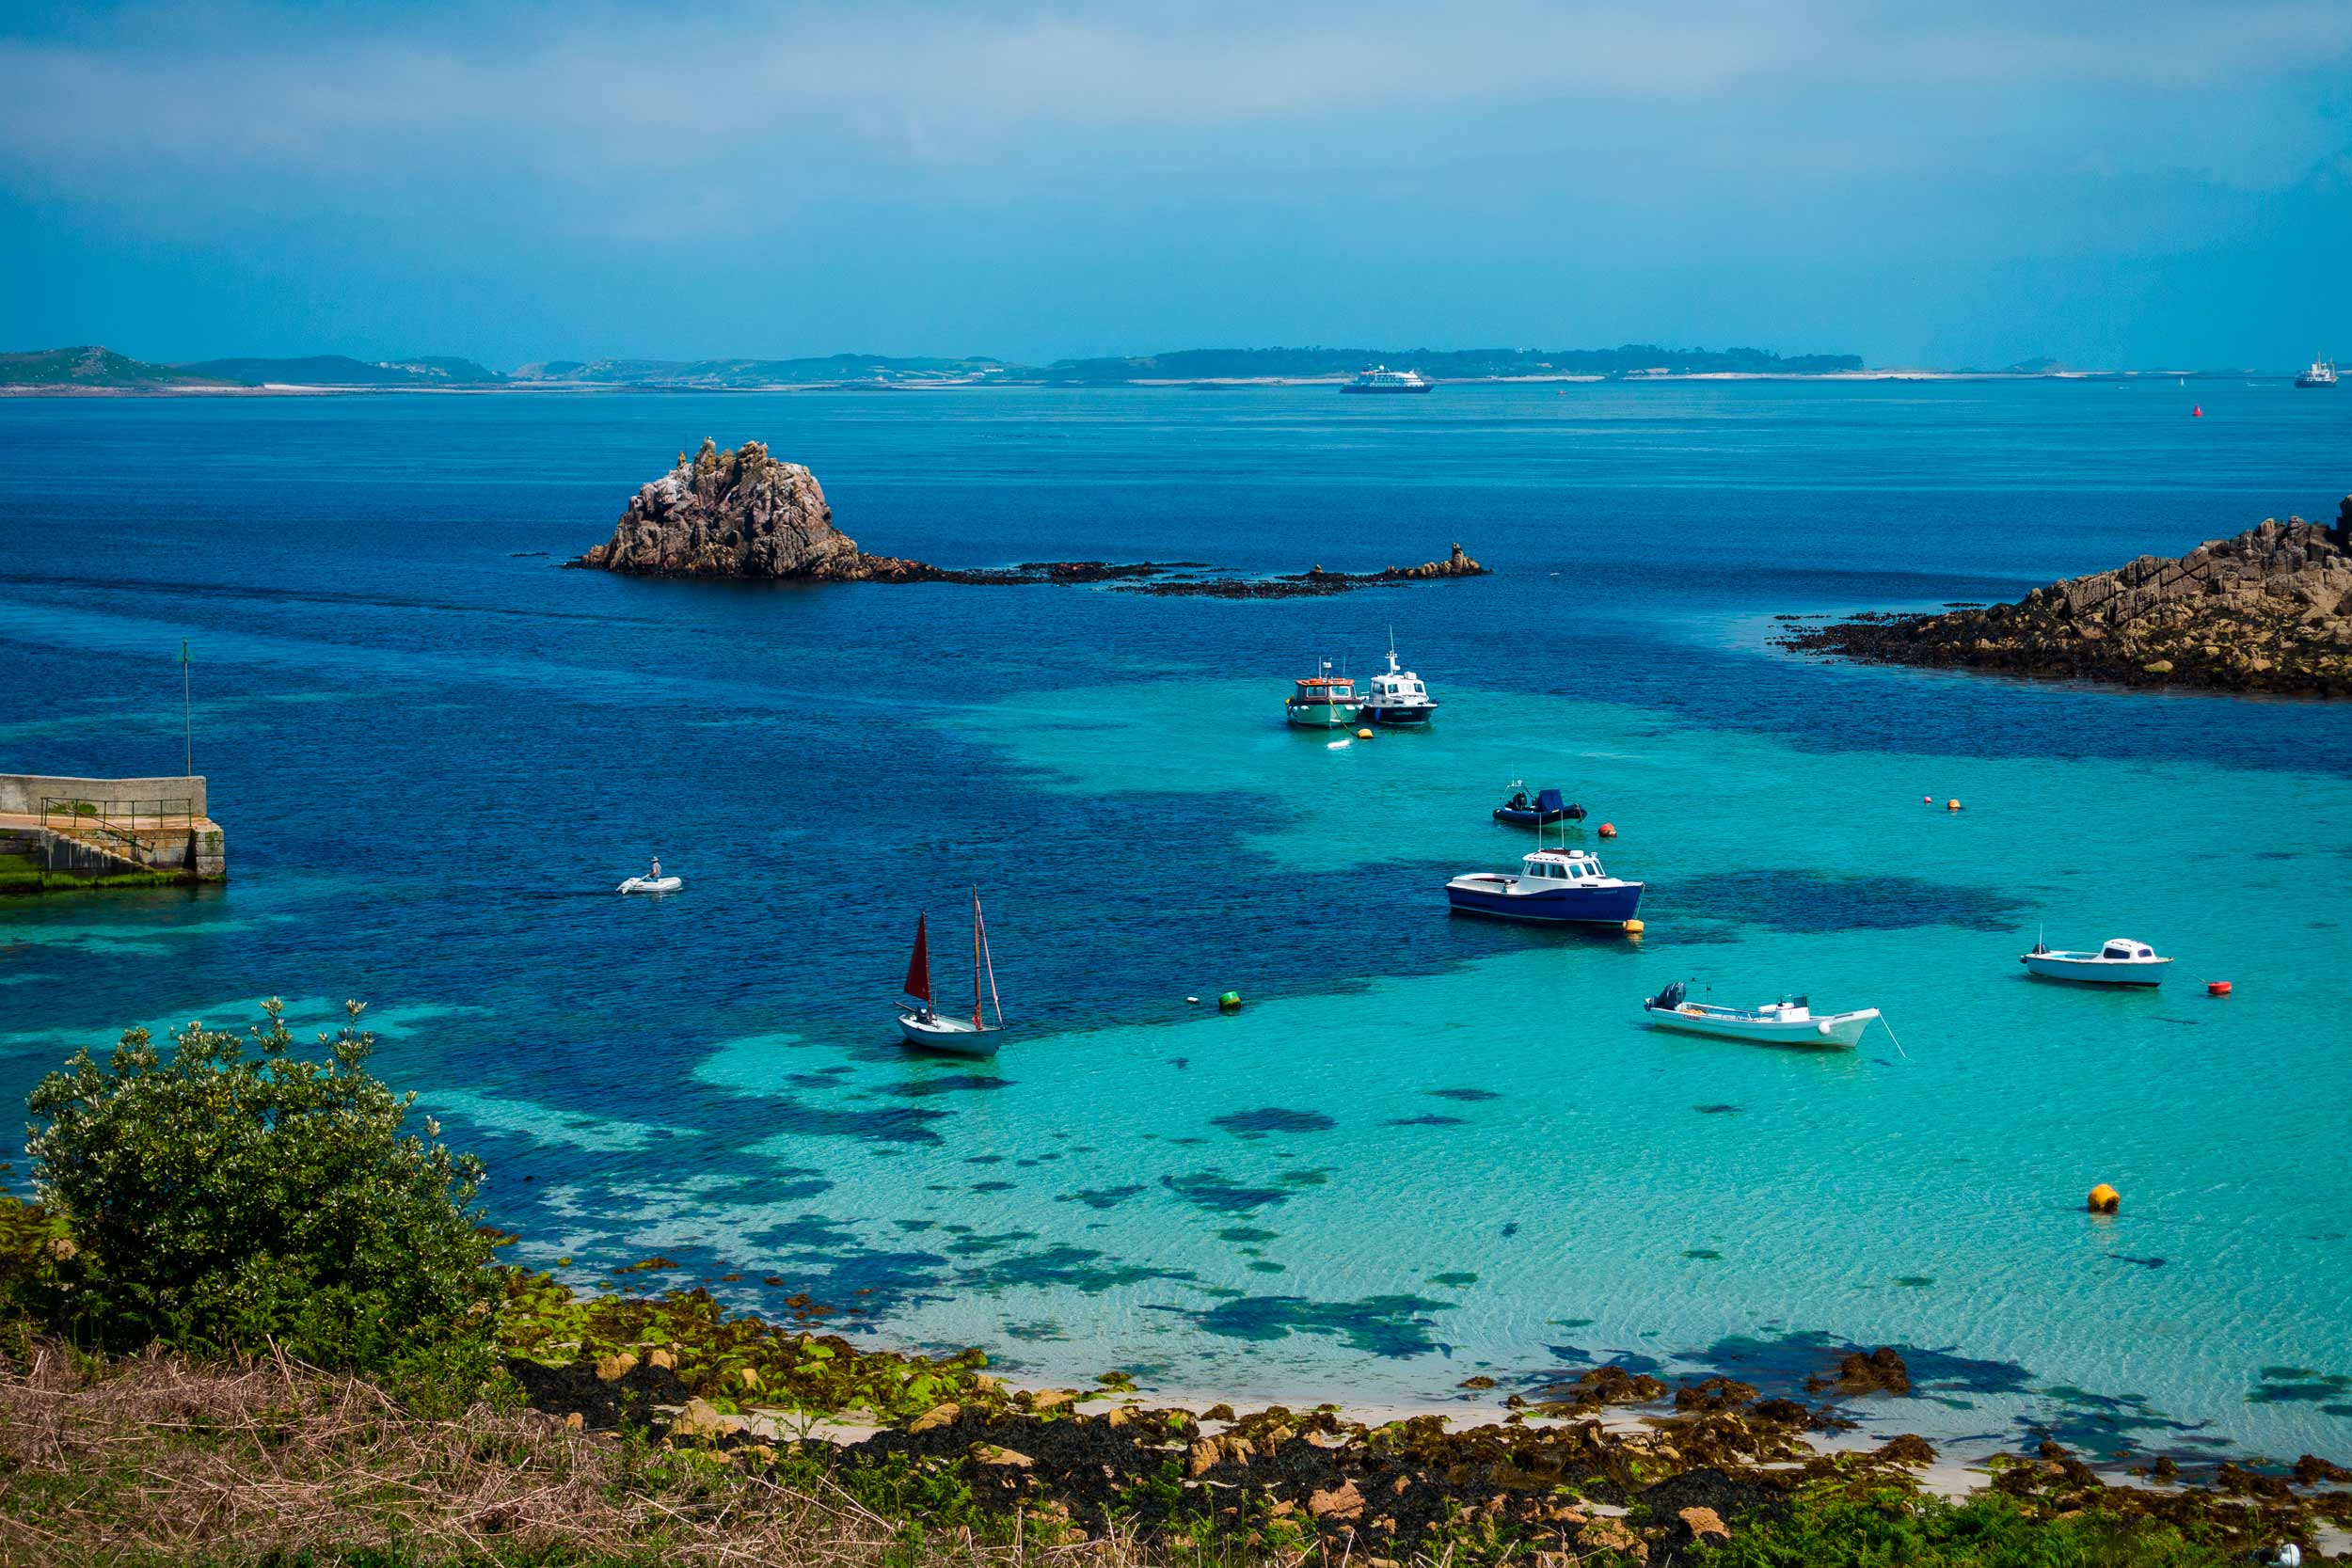 The Scilly Isles